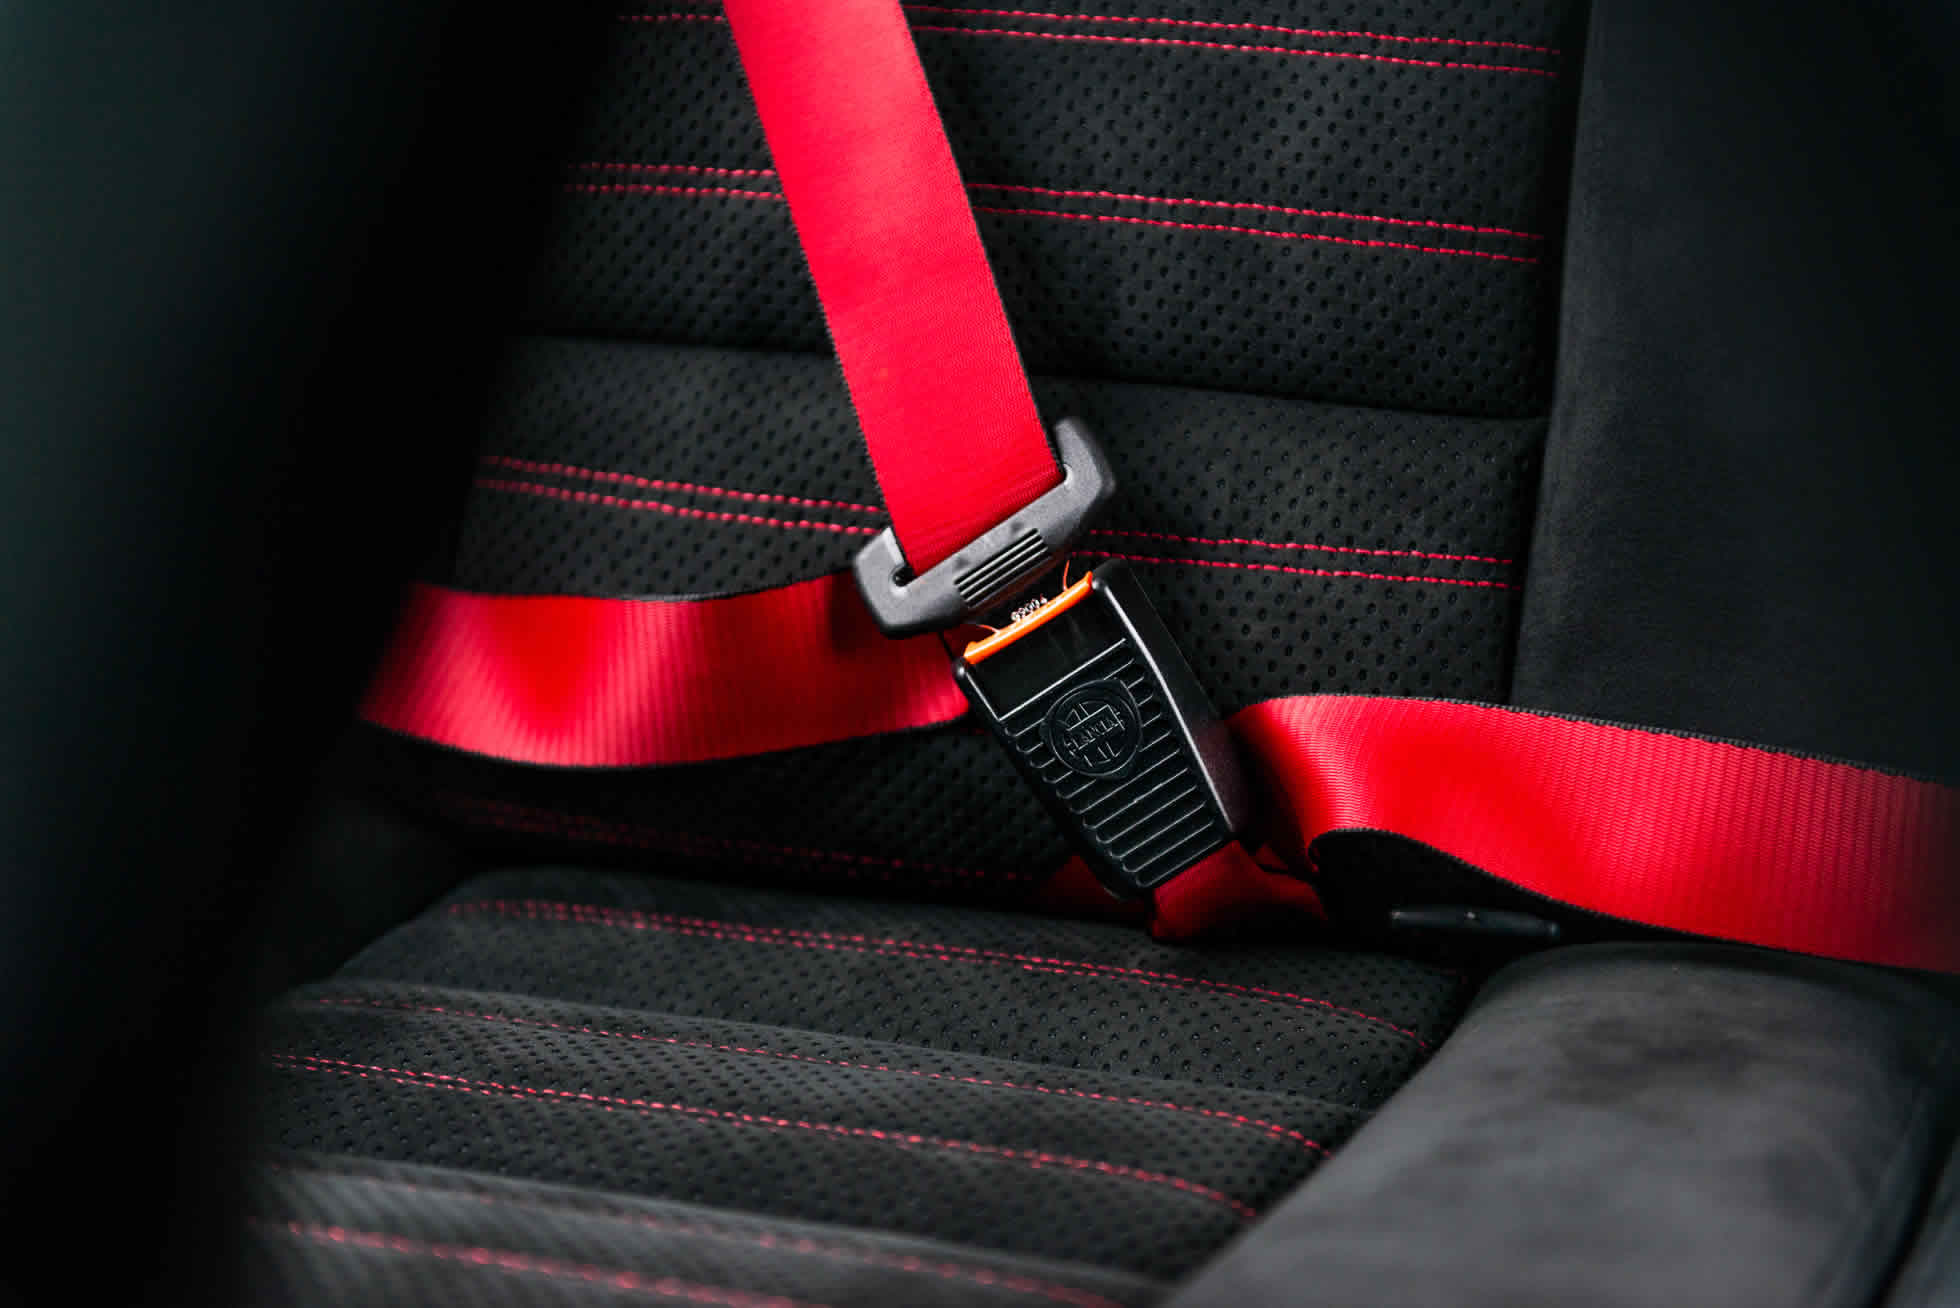 For Sale 1992 Lancia Delta Integrale EVO 'Martini 5' seat belts